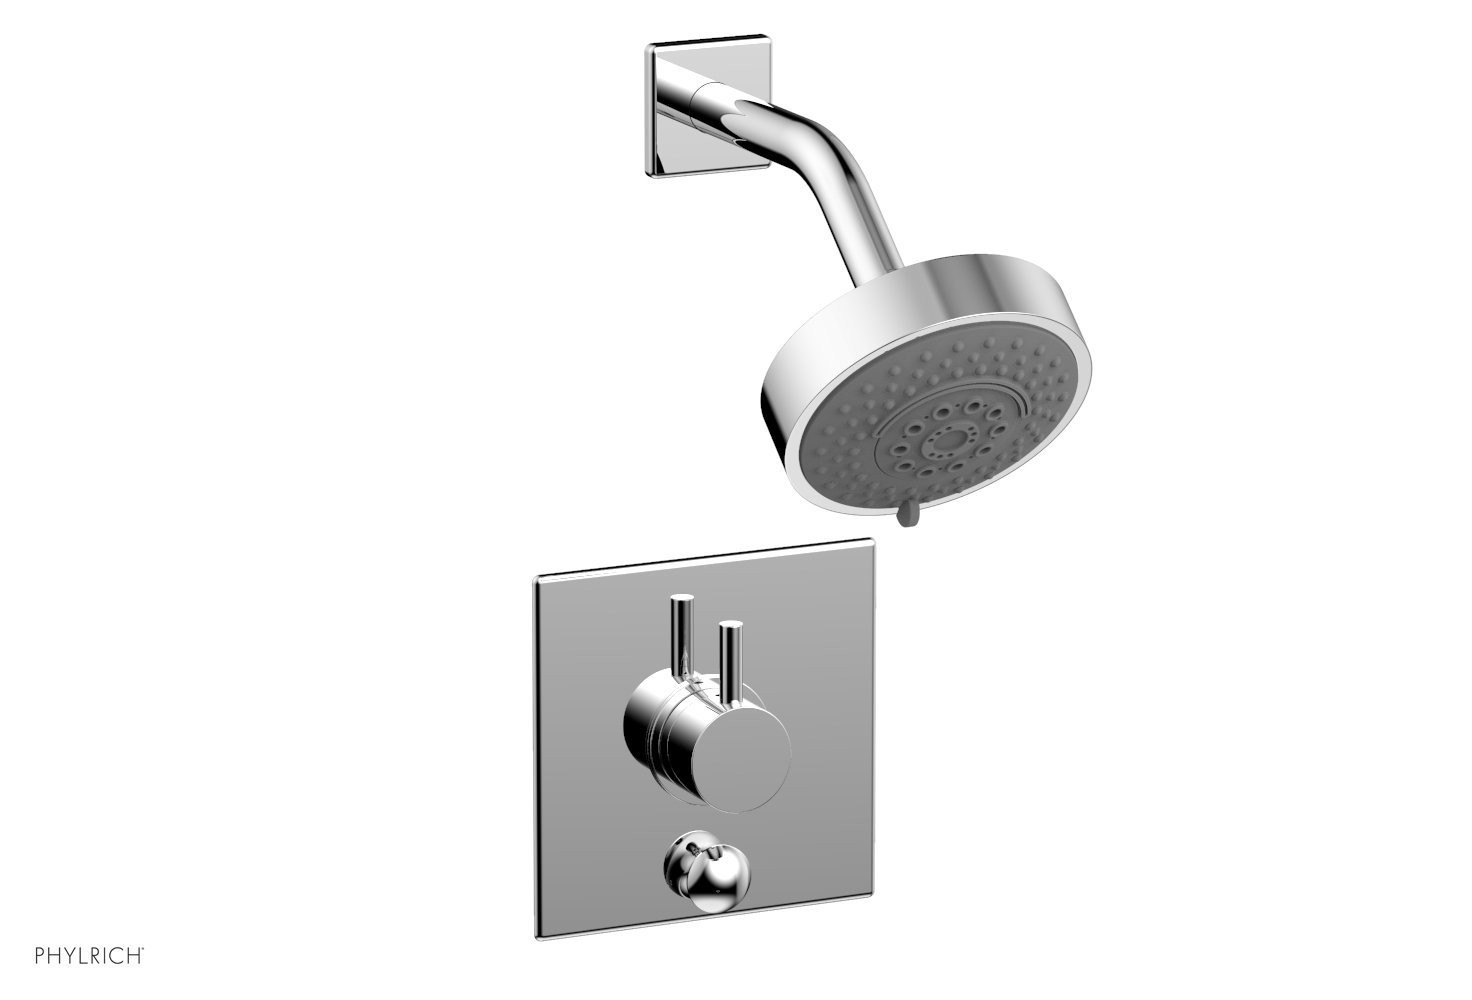 PHYLRICH 4-195 BASIC II WALL MOUNT PRESSURE BALANCE SHOWER AND DIVERTER SET WITH LEVER HANDLE